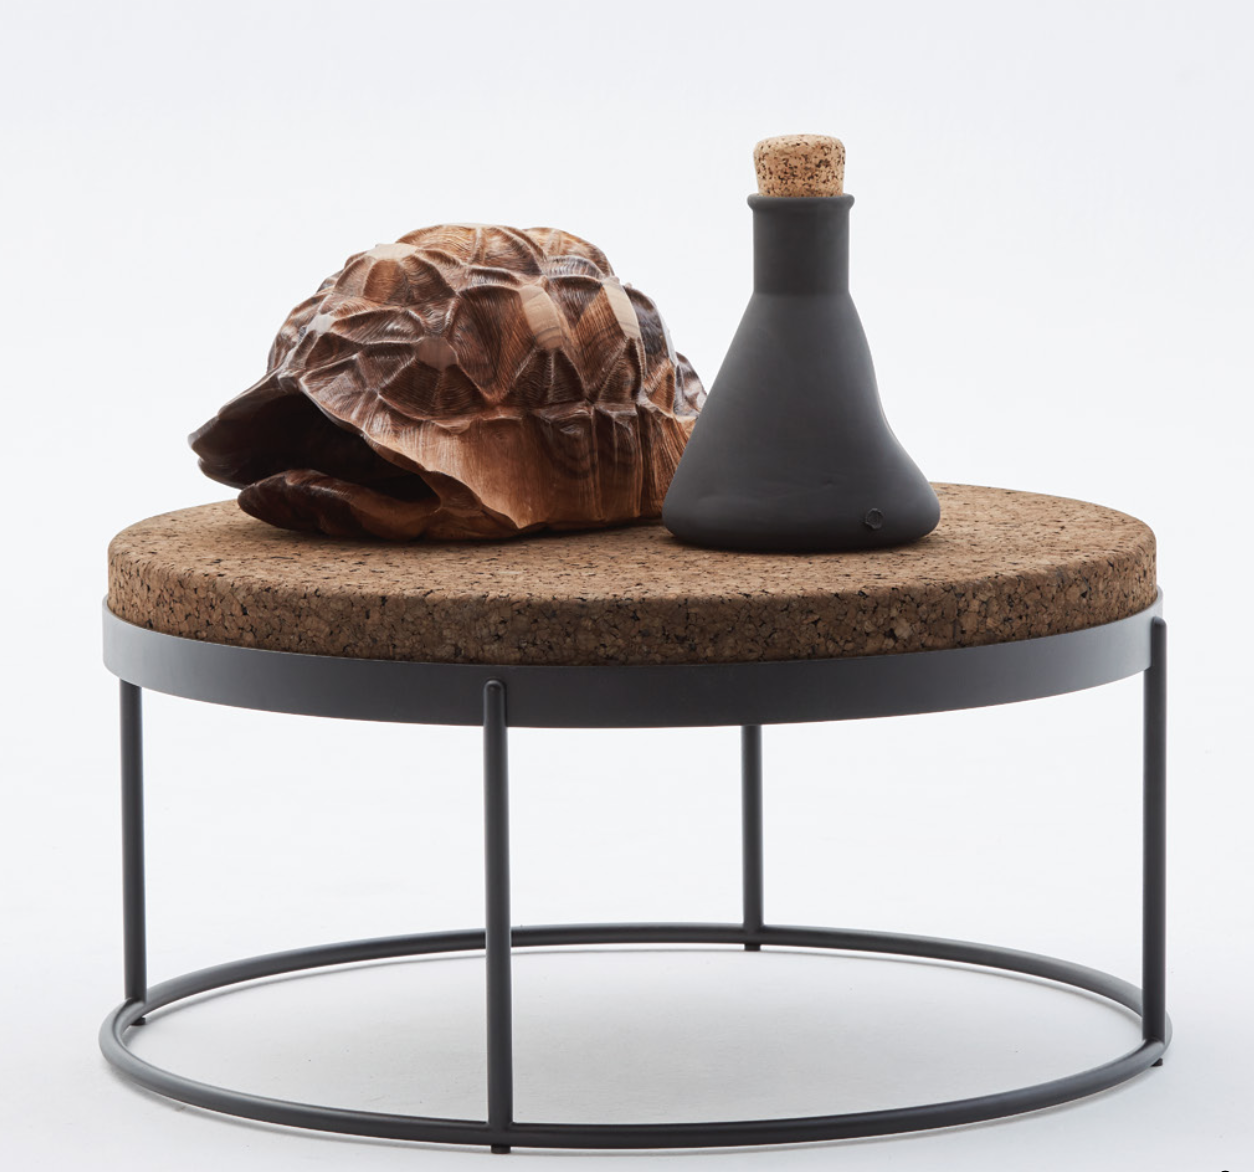 Tortoise Shell & Warped Lab Vase Low res